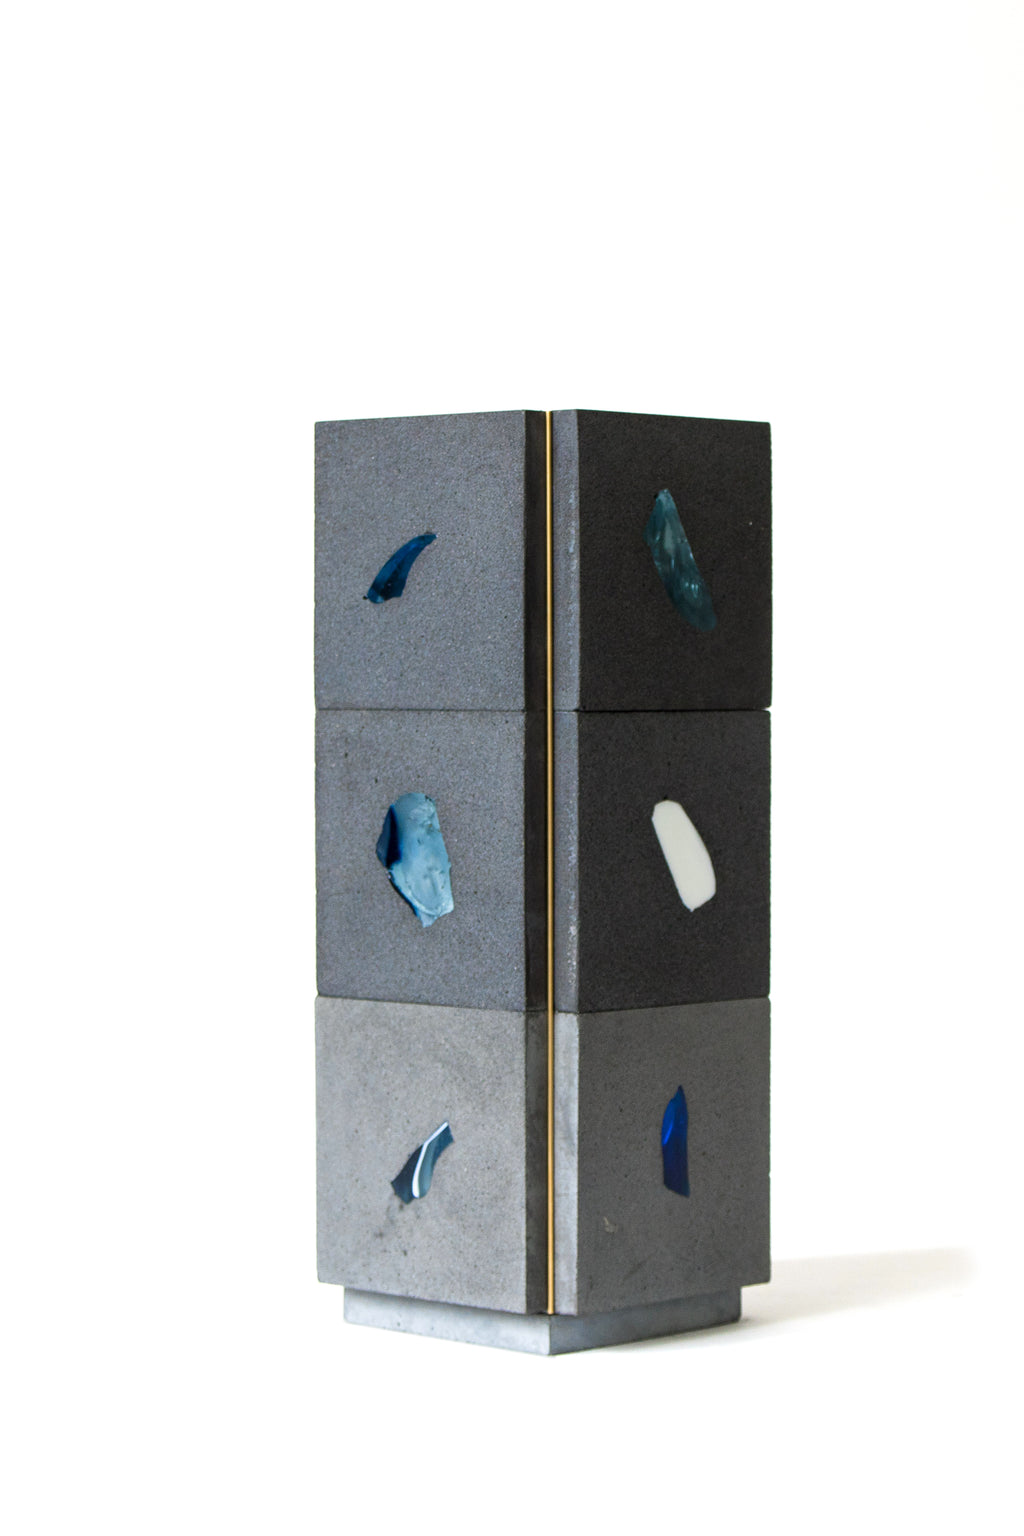 Two of four side views, Functional artpieces, architecture for flowers, design vases made of Basis Rho, designed and handmade by Studio Jeschkelander, sustainable production, neoterrazzo